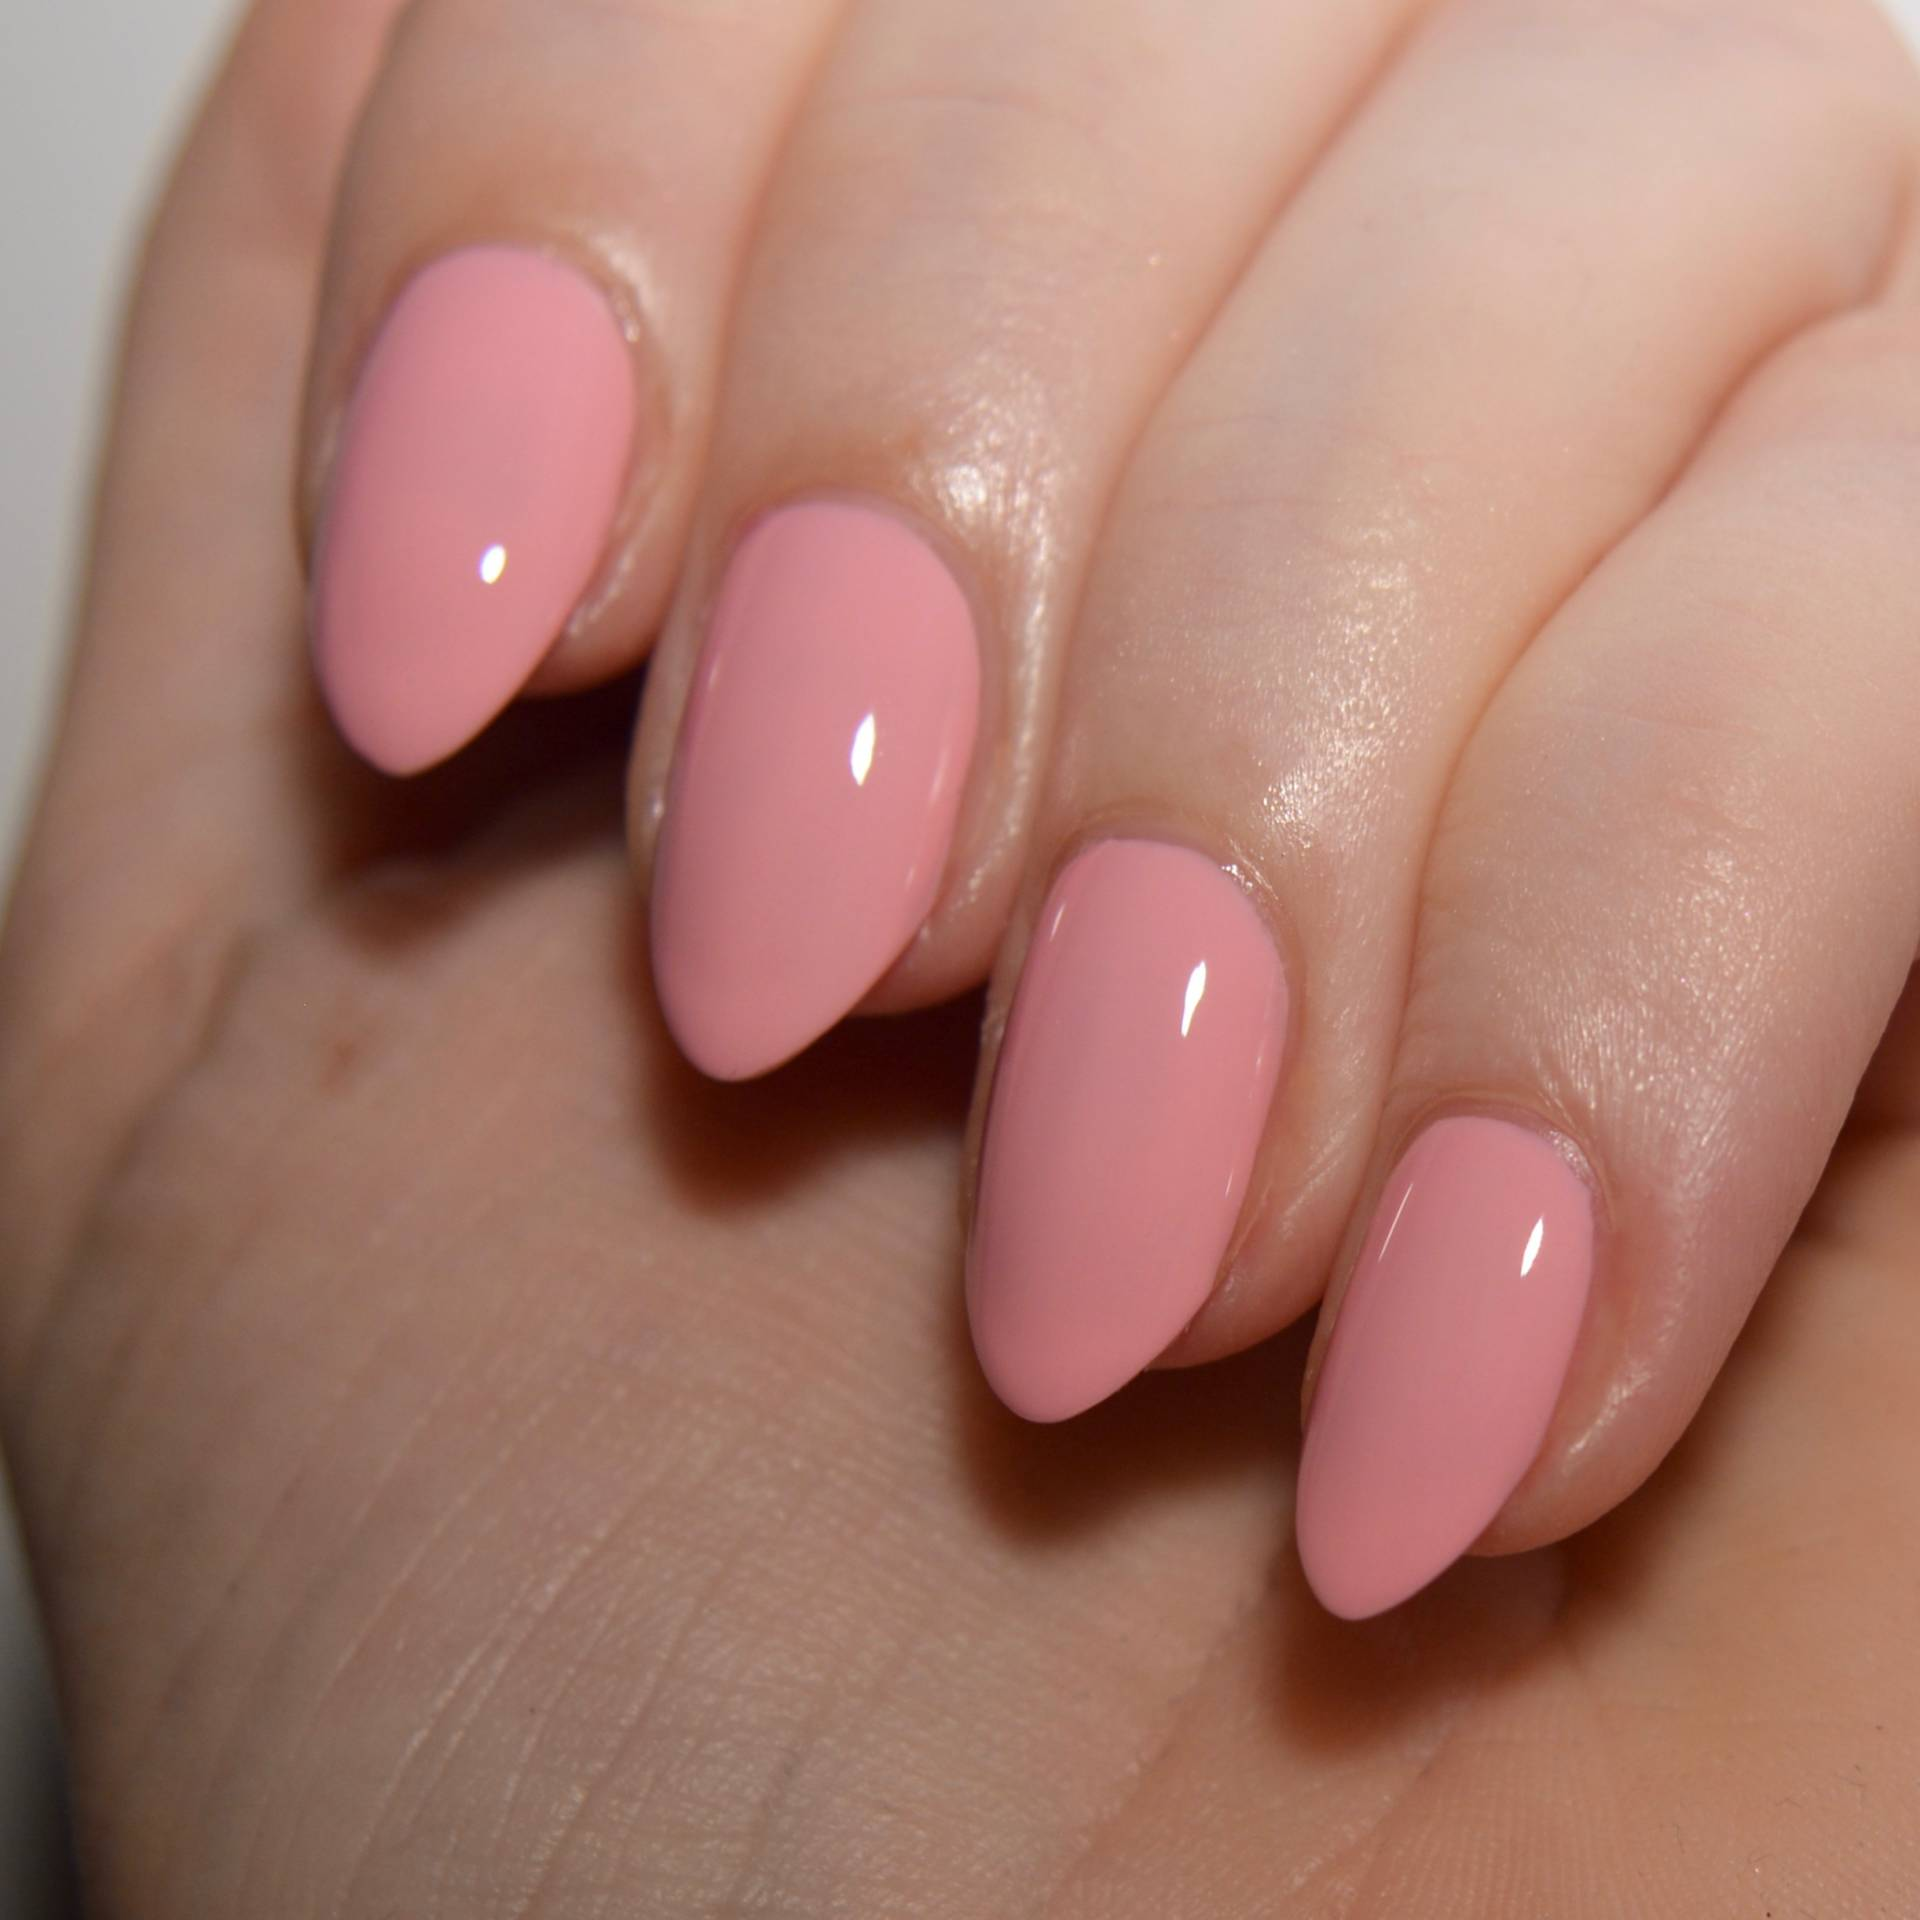 Essie 'Flawless' from the Retro Revival 2017 collection. I love this muted blush pink nail polish.